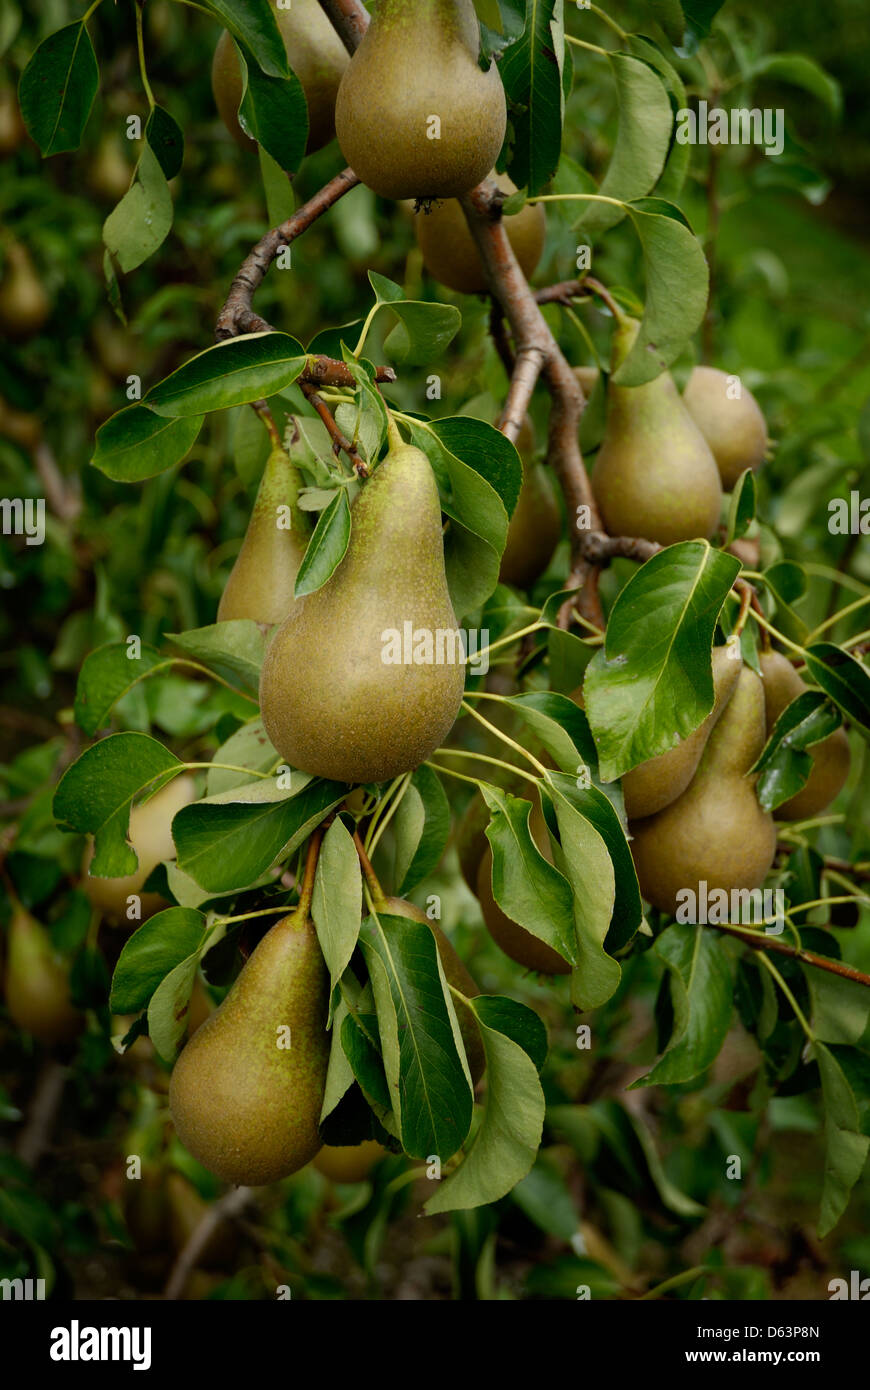 Pears growing on trees in Kent, England, Britain, UK, - Stock Image